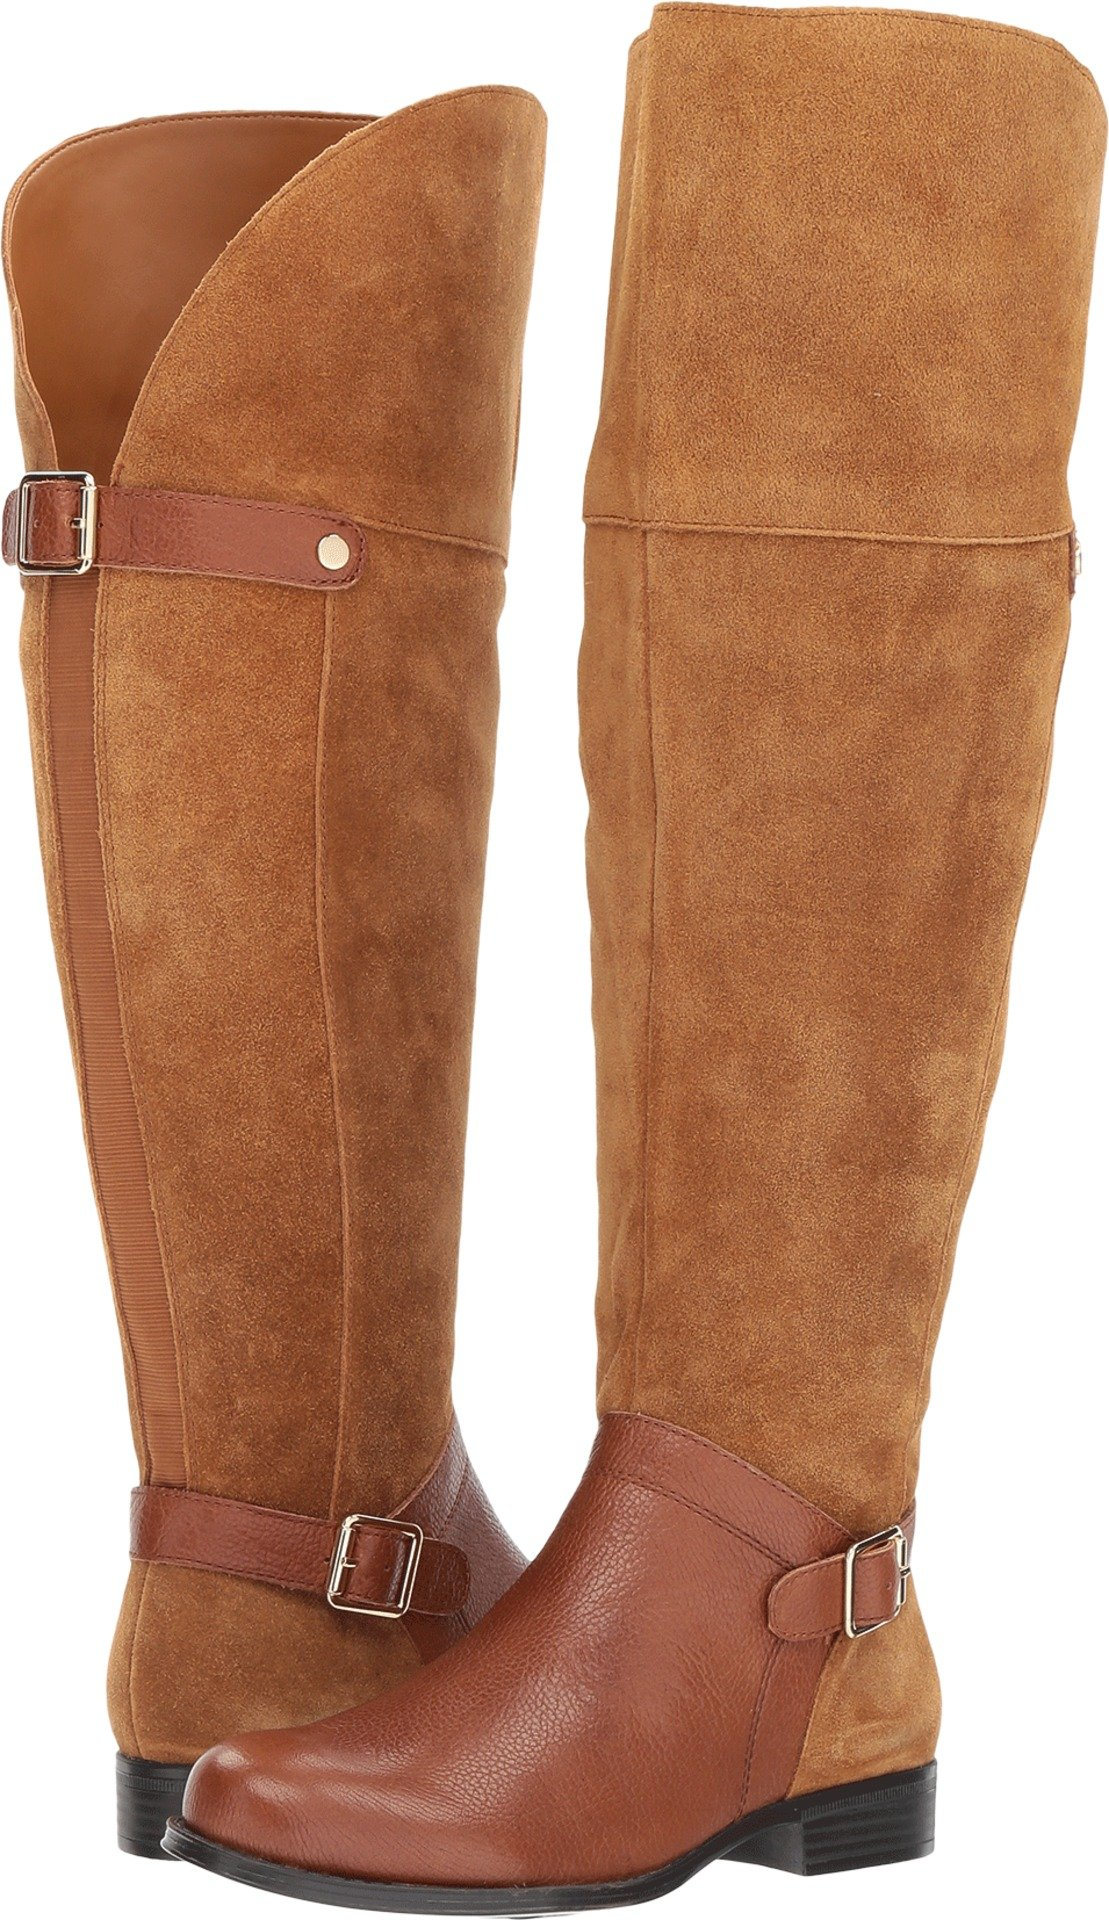 Naturalizer Women's January WC Riding Boot, Camel, 7 2W US